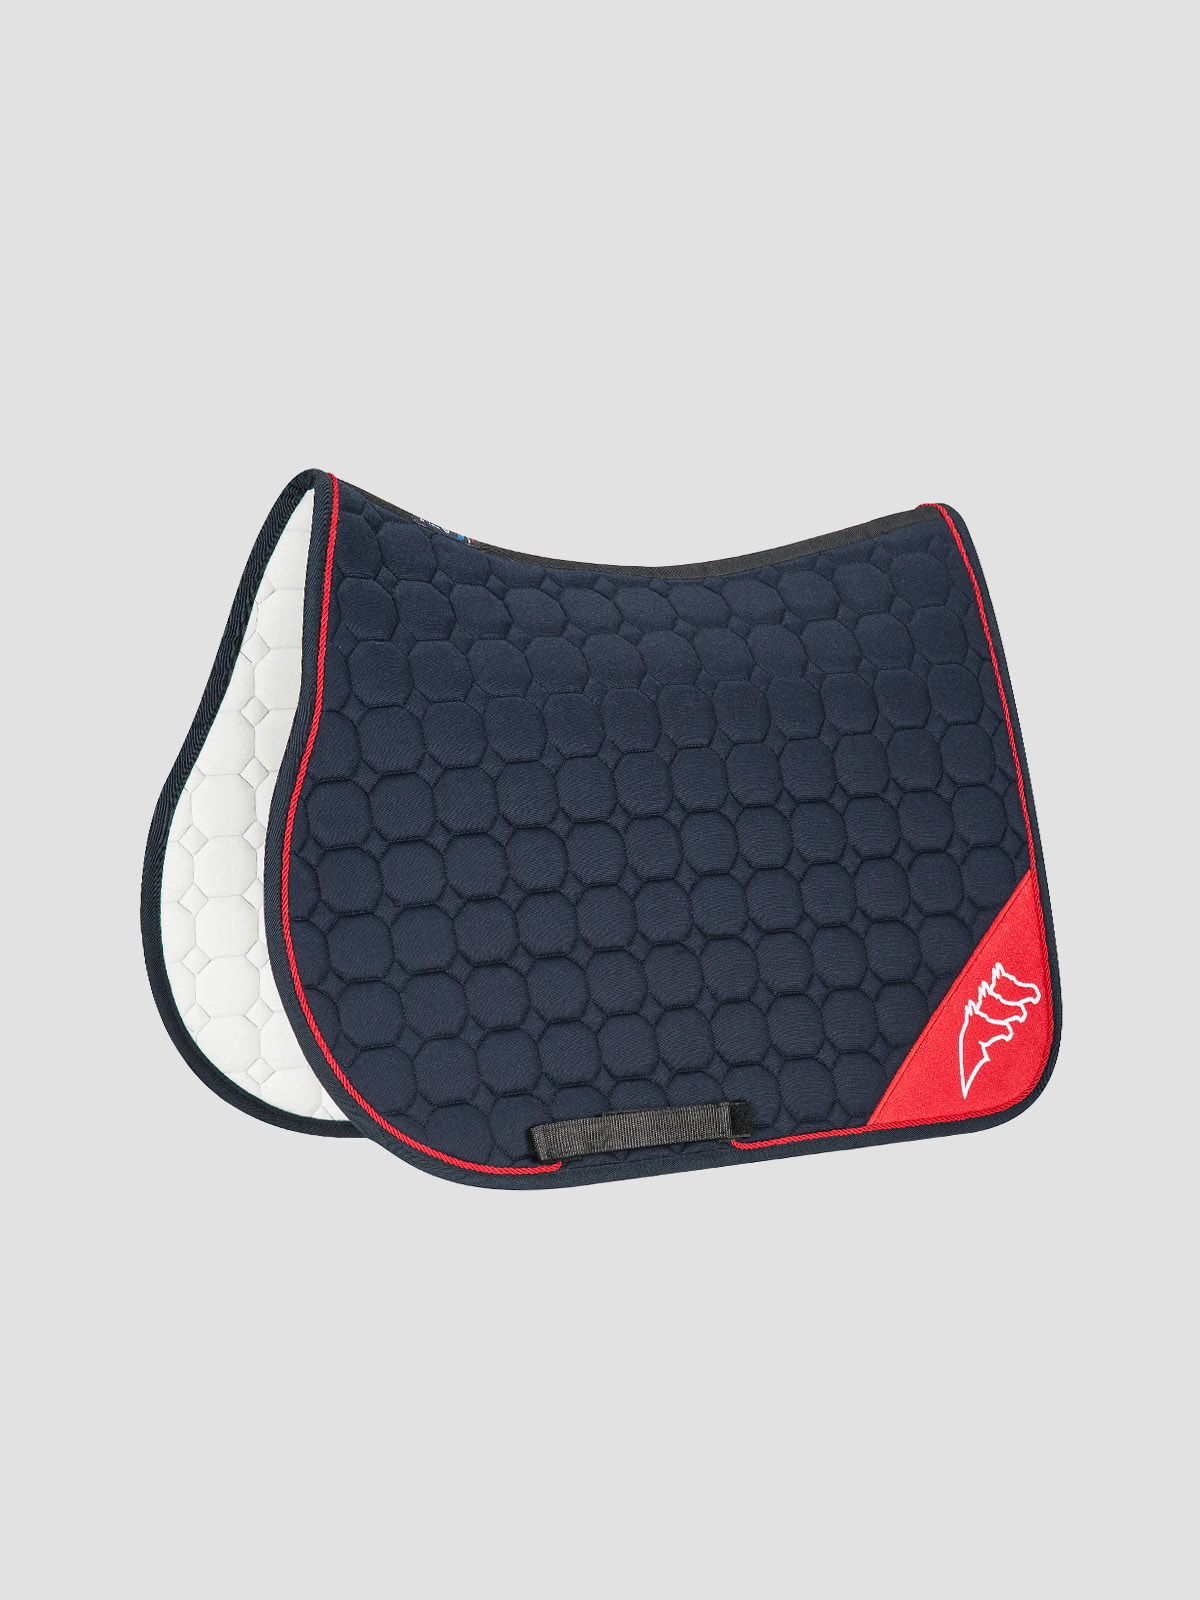 NADIR - Octagon Saddle Pad with Contrast Equiline Logo 1